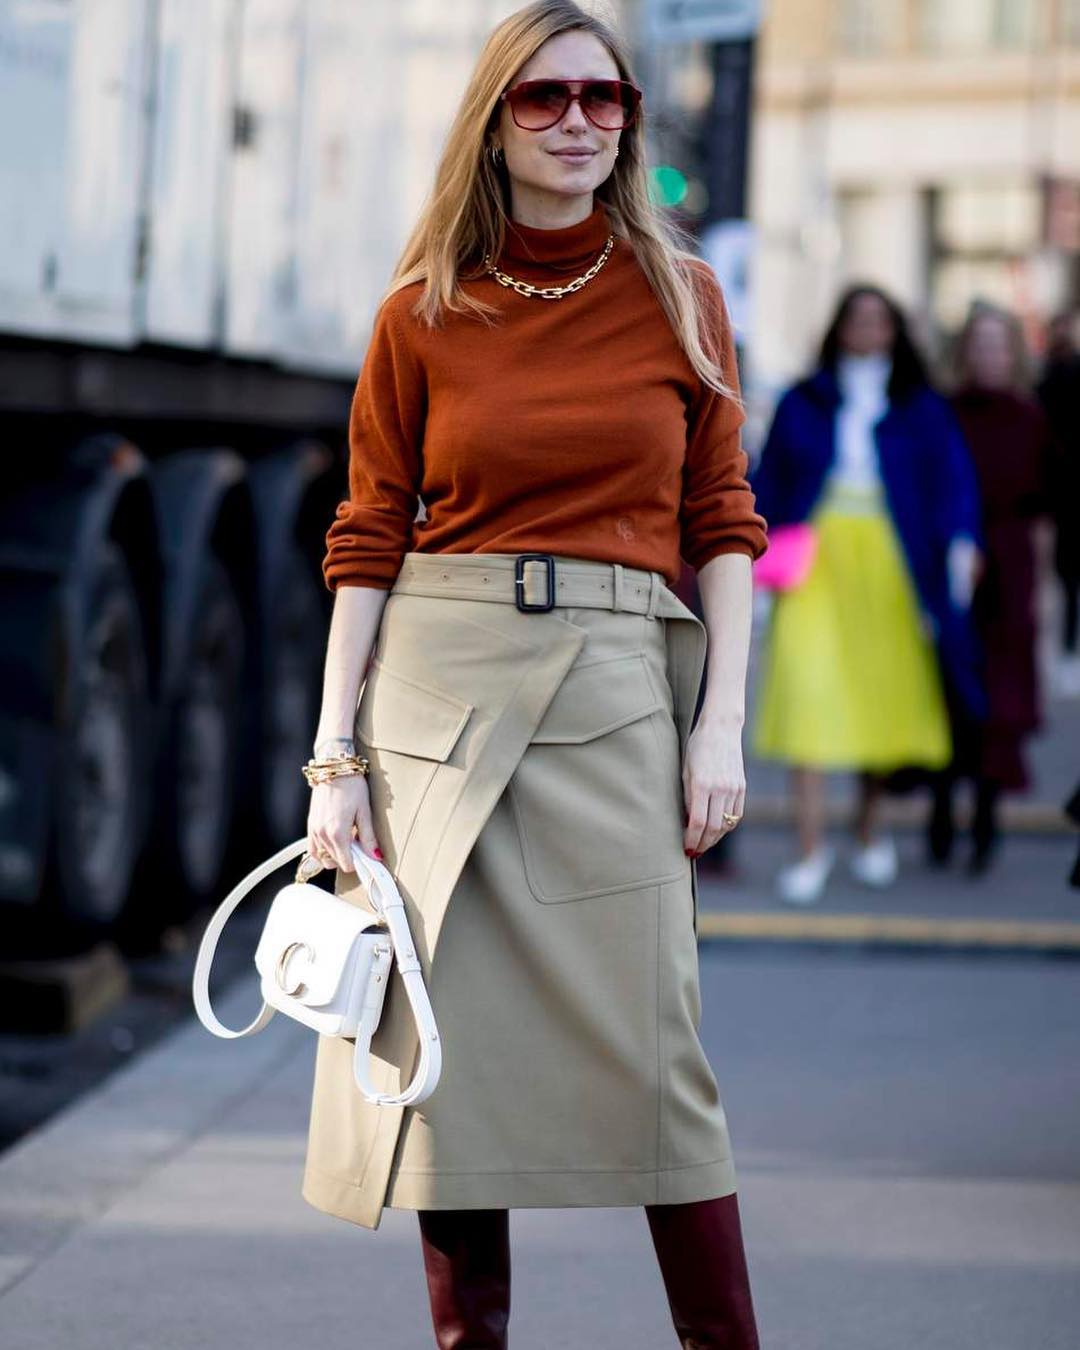 pernille-teisbaek-chloe-c-bag-paris-fashion-week-fall-2019-street-style